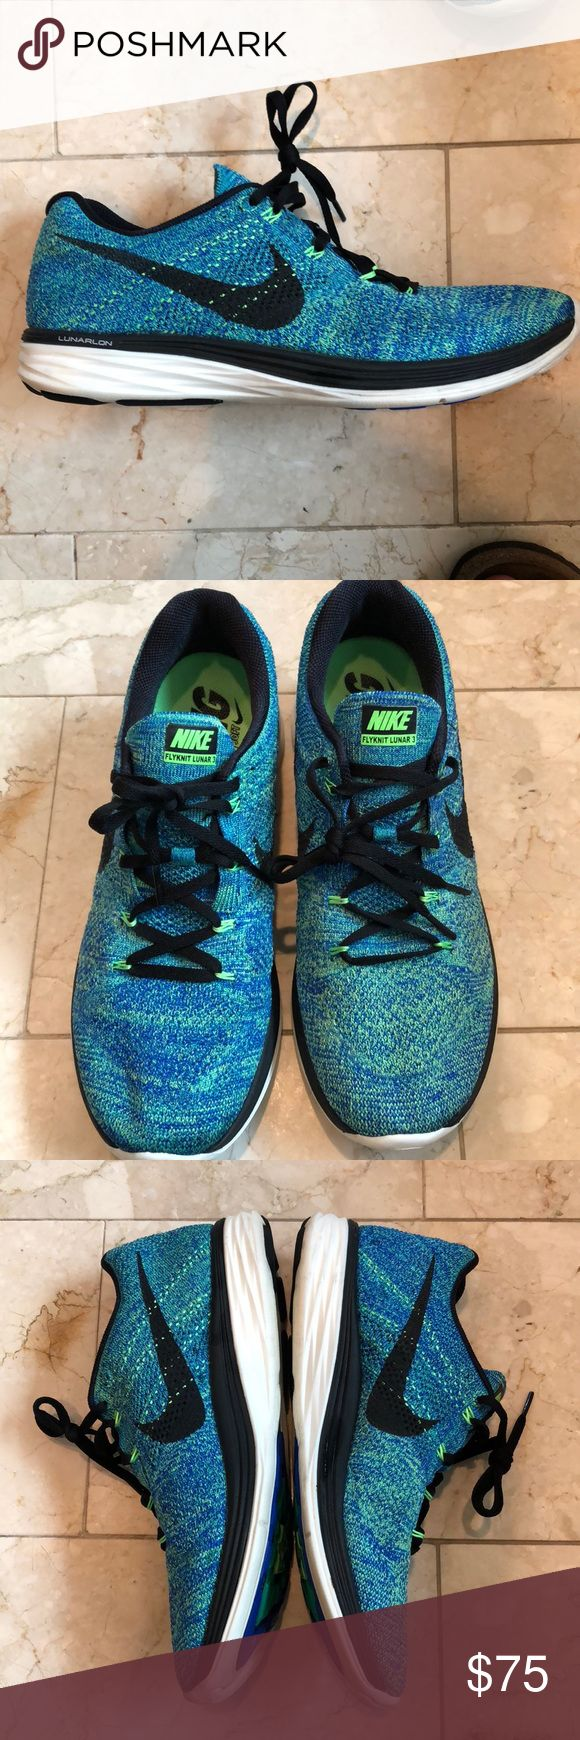 Nike FlyKnit Lunar 3 Nike FlyKnit Lunar 3's. Great condition! Worn a handful of times. Neutral ride shoe. Nike Shoes Athletic Shoes